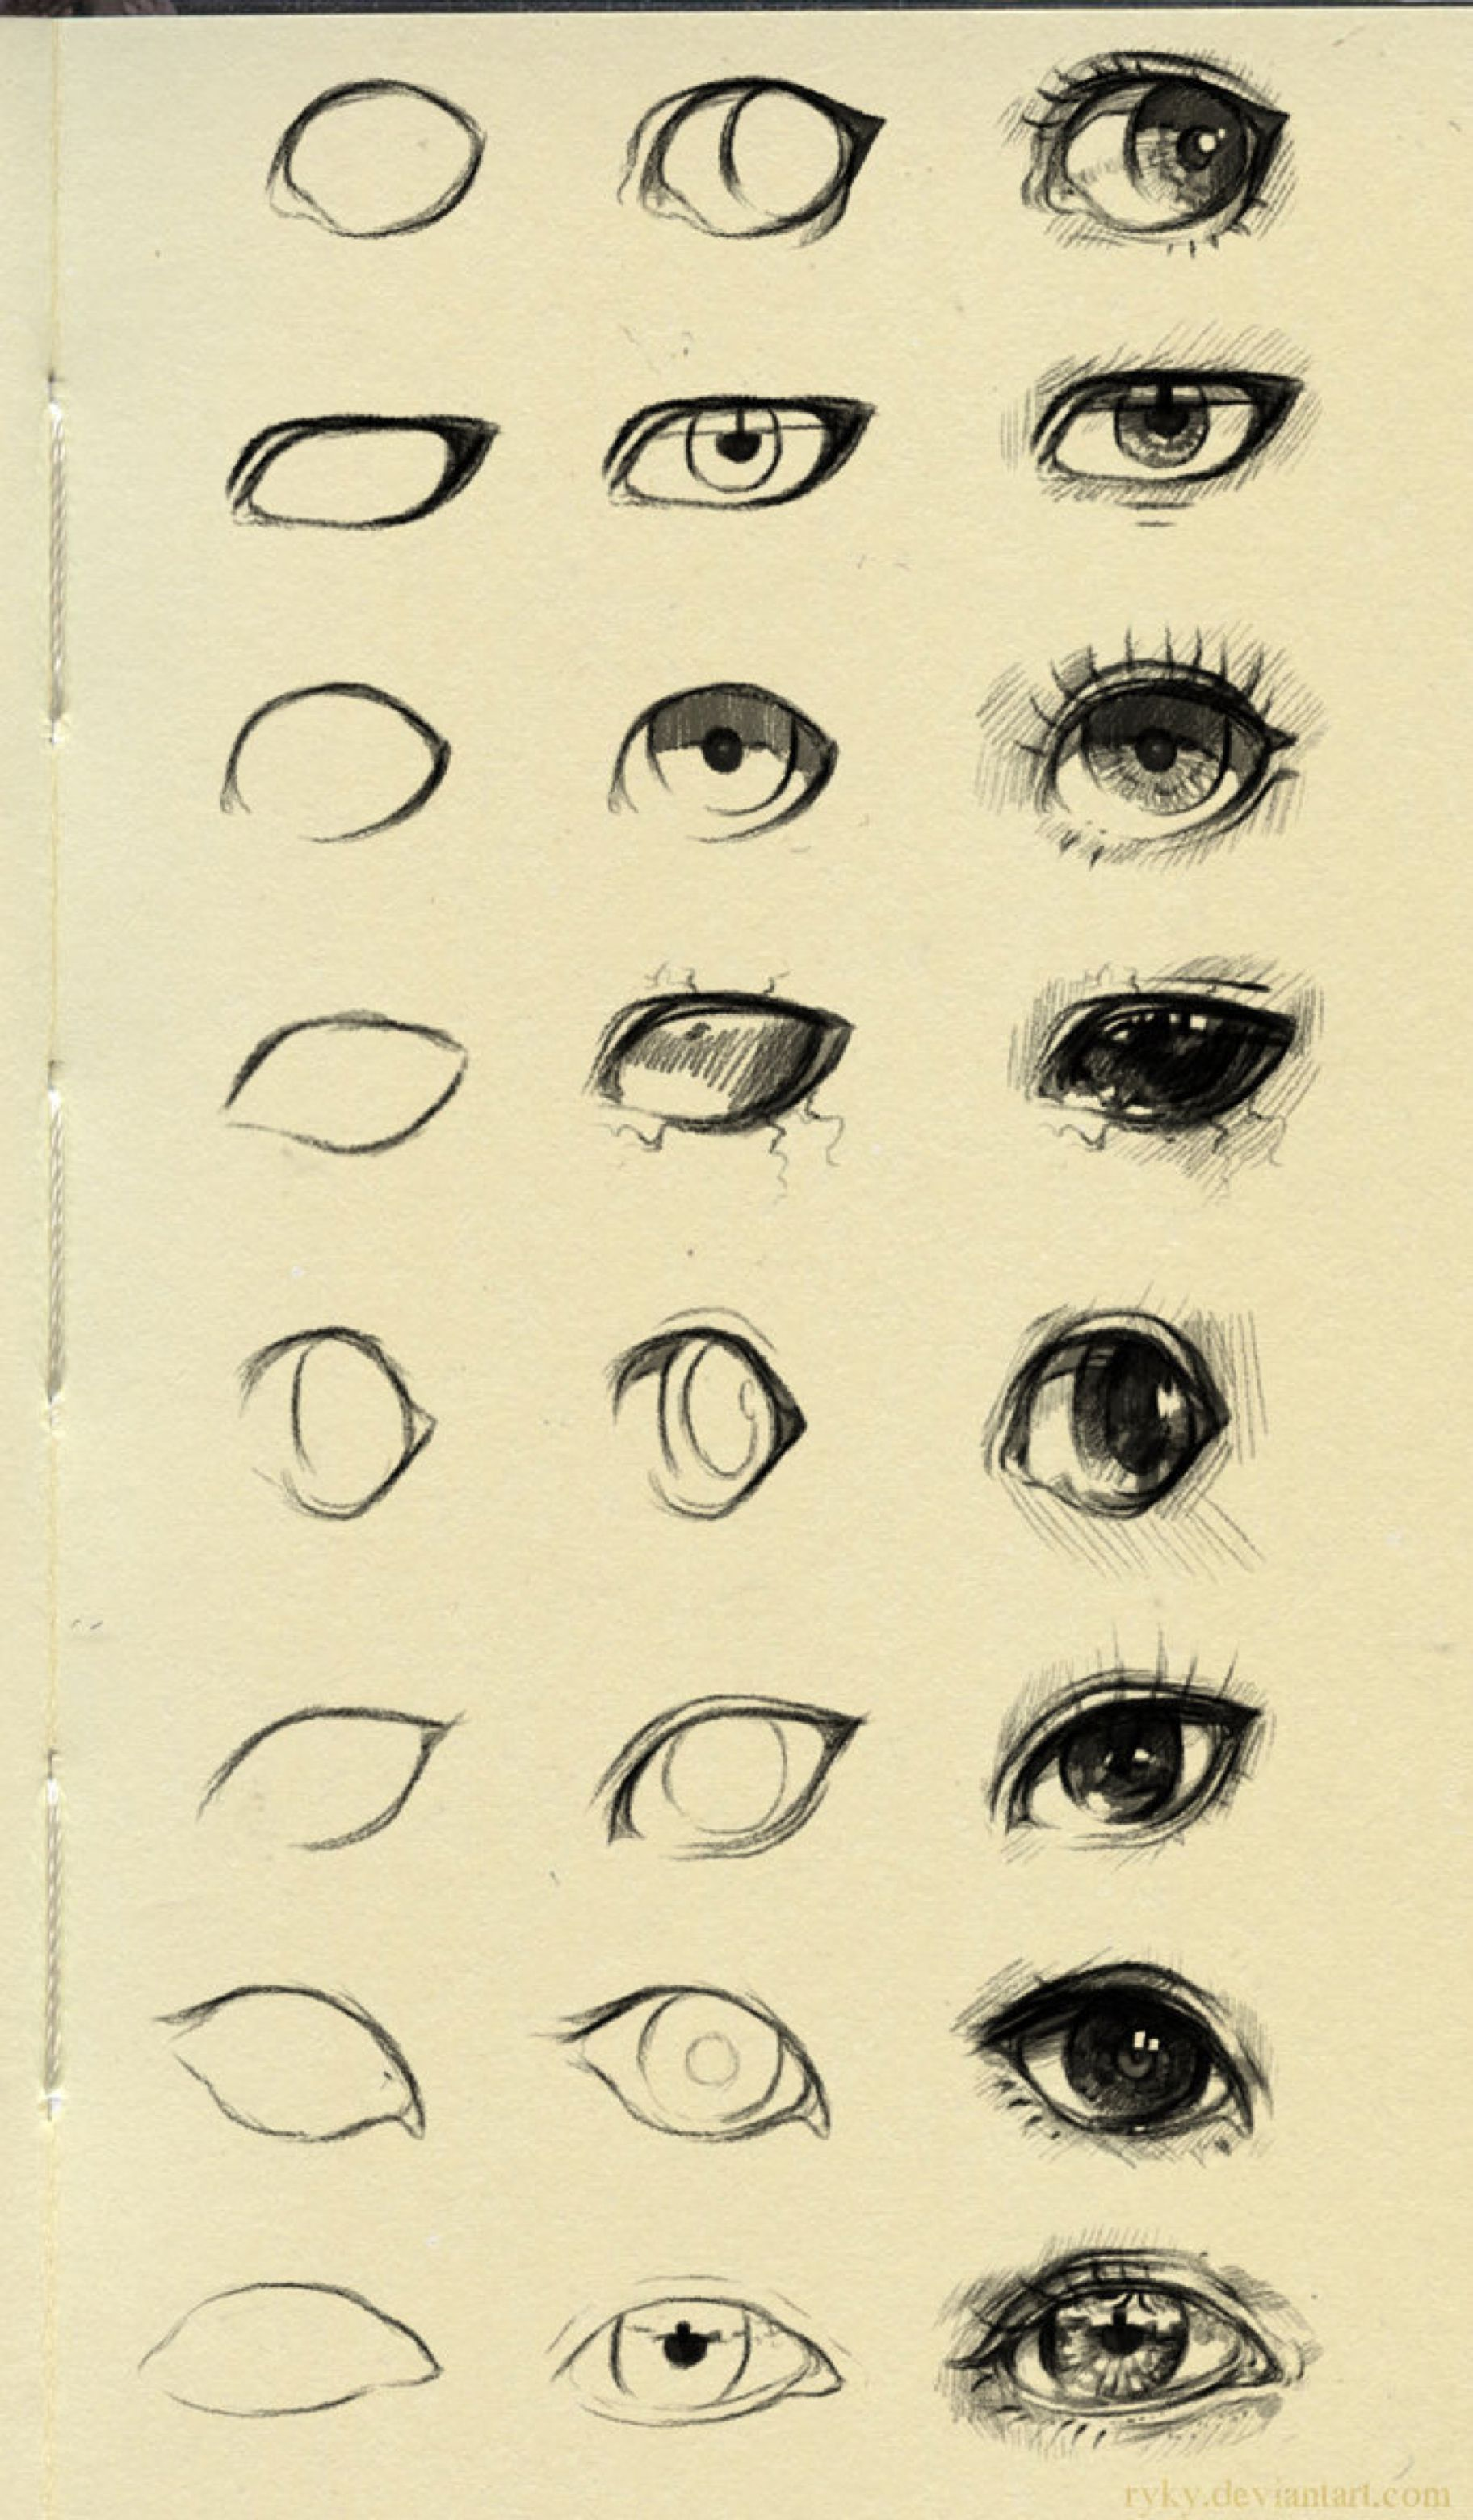 Eyes Reference 3 By Ryky On Deviantart Drawings Sketches Pencil Art Drawings